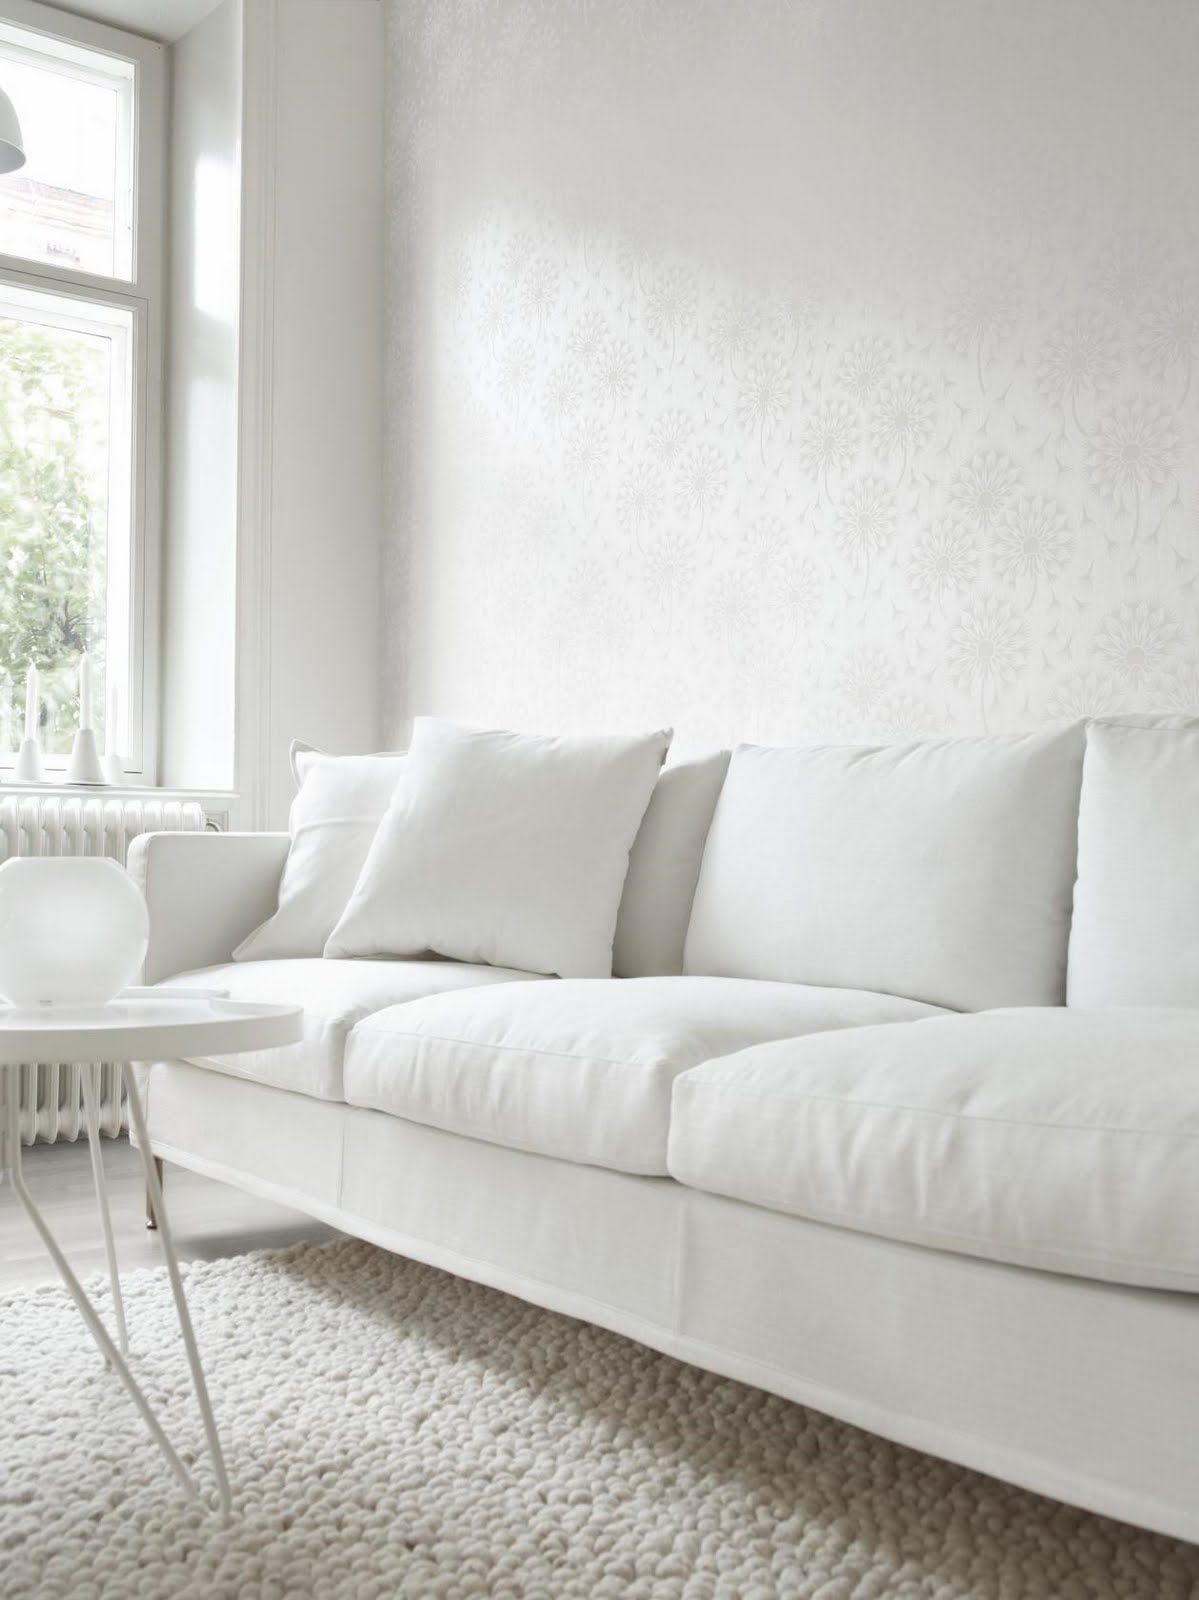 Interio Sofa Utopia Best Inspirations Sofa And Interior Design White Walls Minimalist